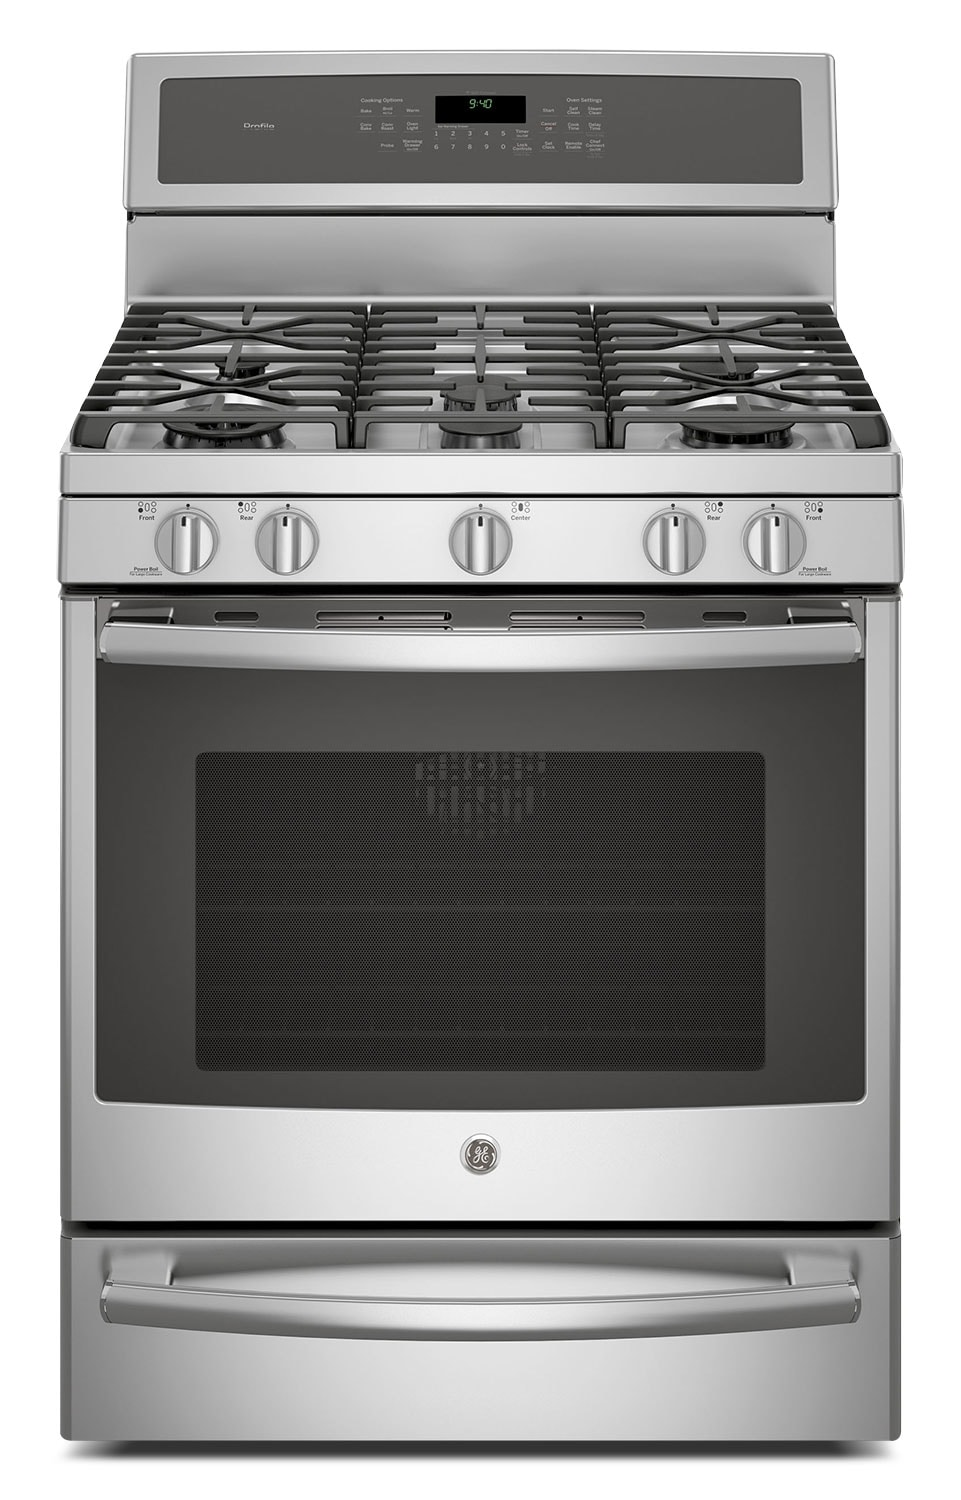 Cooking Products - GE 5.6 Cu. Ft. Freestanding Gas Range – PCGB940ZEJSS